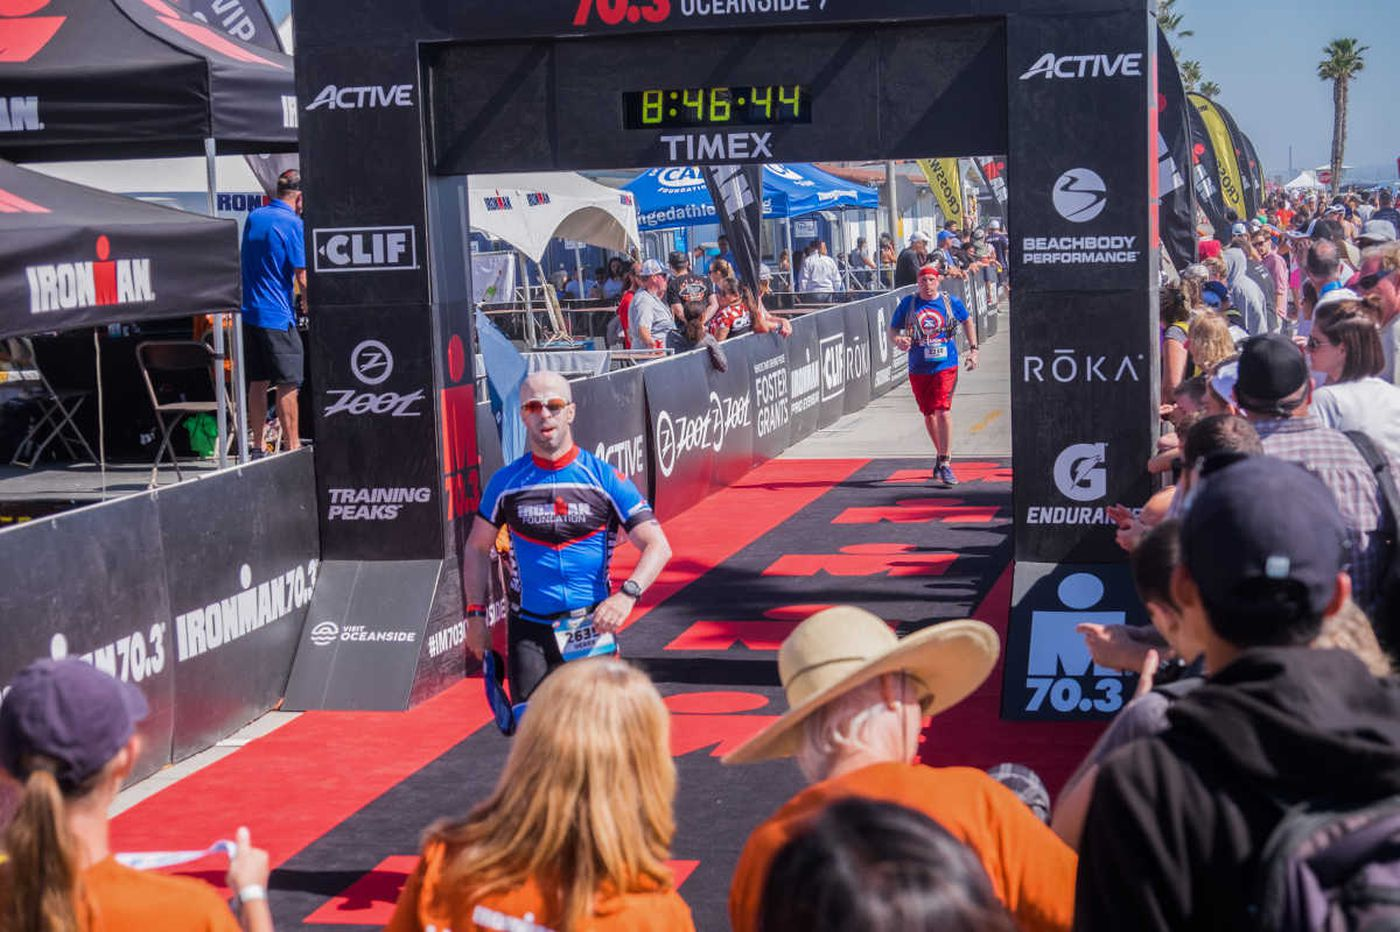 An Ironman to his organ donor: I am alive because I am 'us'